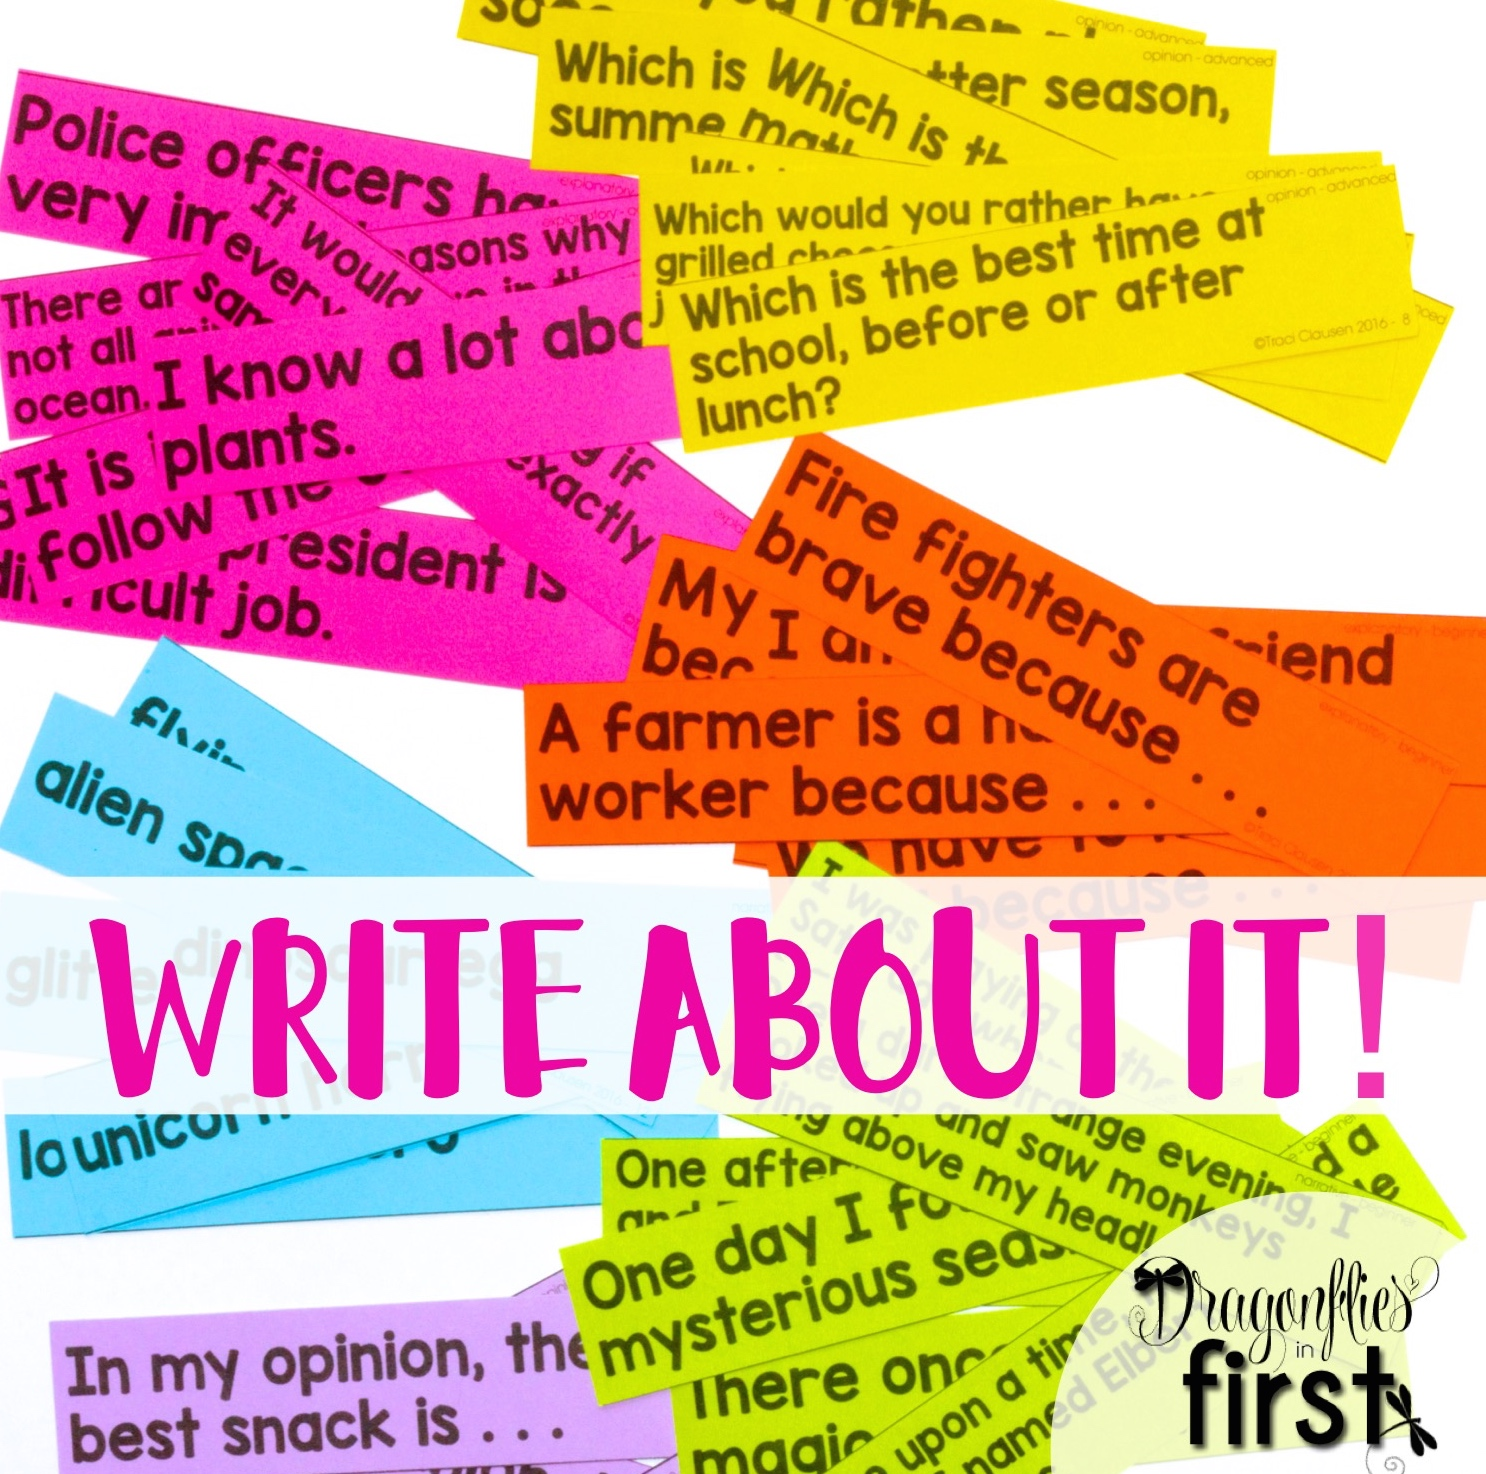 writing prompts about education To complete physical education writing assignments successfully, get acquainted with their basic rules, standards, and requirements to complete physical education writing assignments successfully, get acquainted with their basic rules, standards, and requirements email  look at assignment prompts and follow the necessary academic.